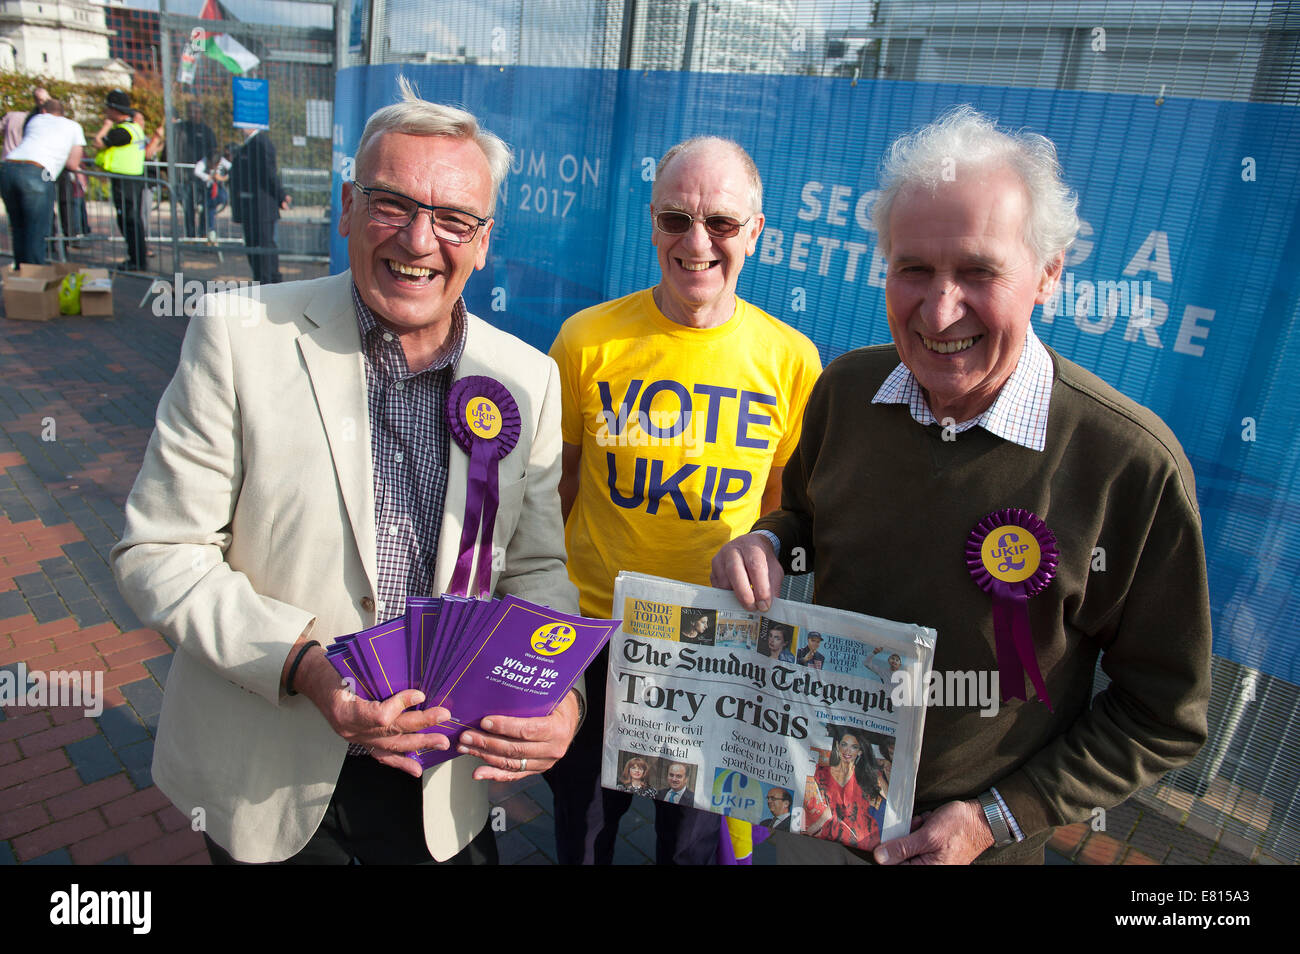 Birmingham, West Midlands, 28th September, 2014.  Mike Green (L) prospective UKIP parliamentary candidate for Burton - Stock Image